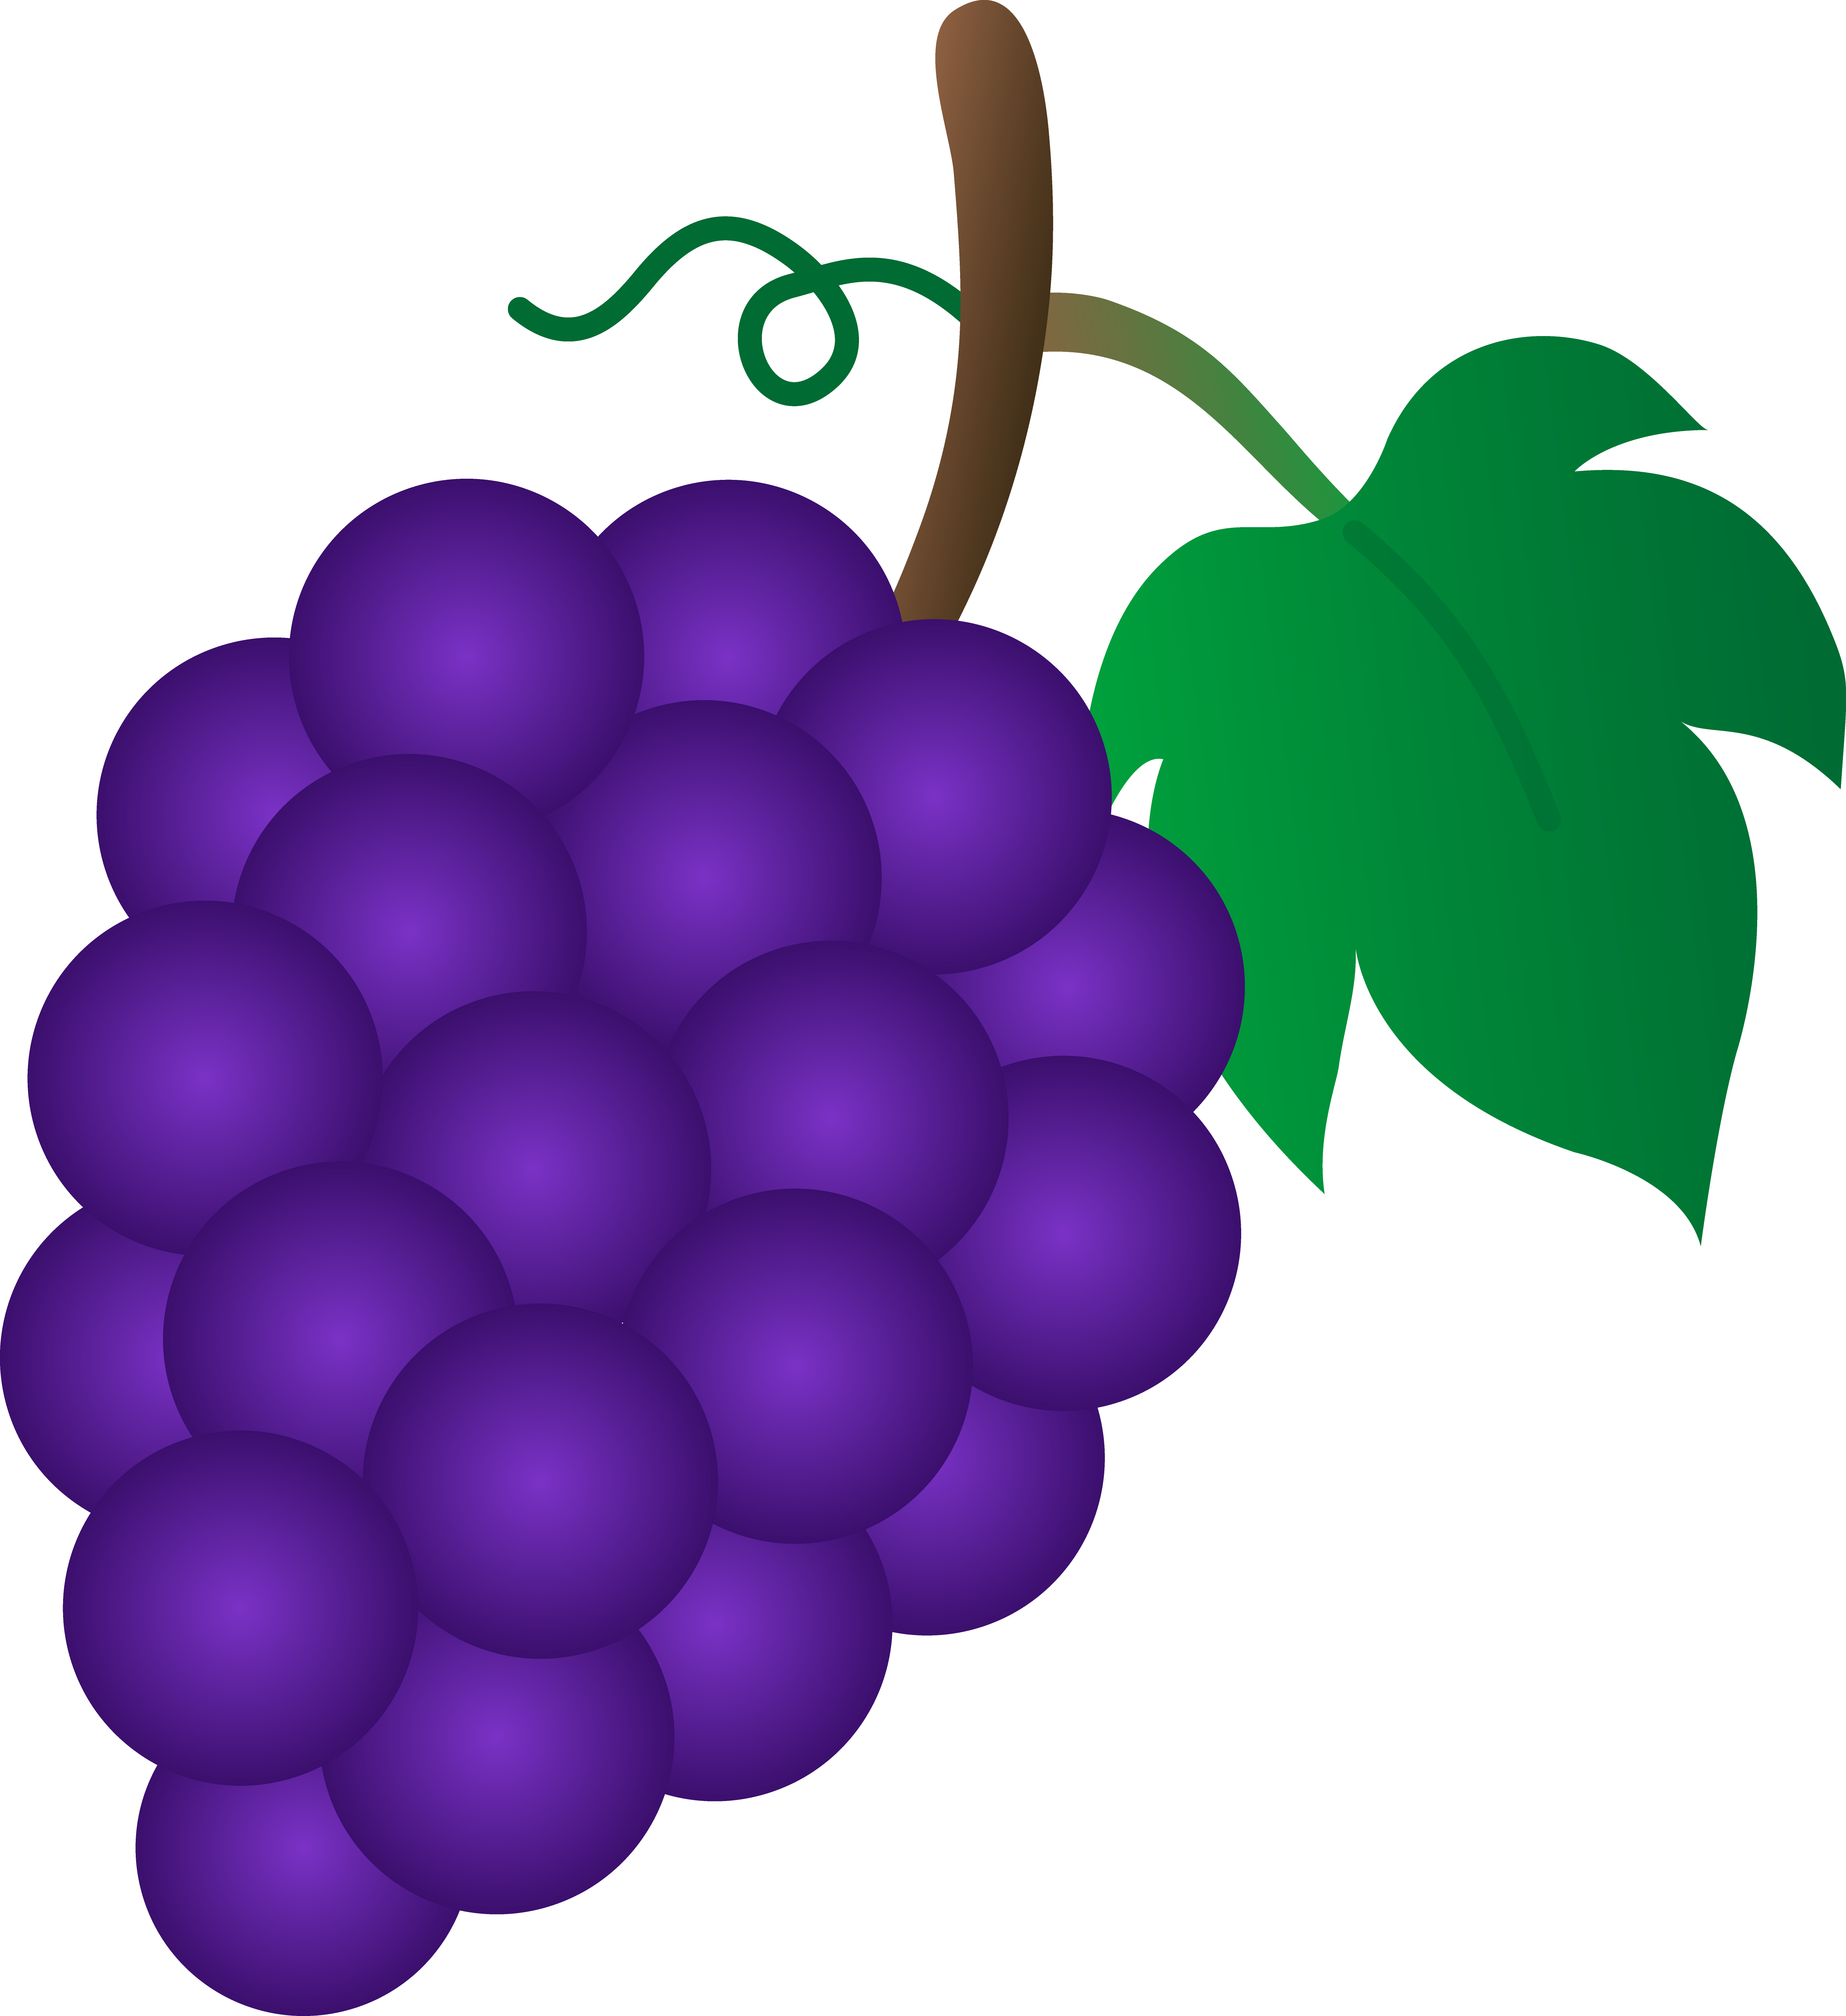 Bunch of Purple Grapes.